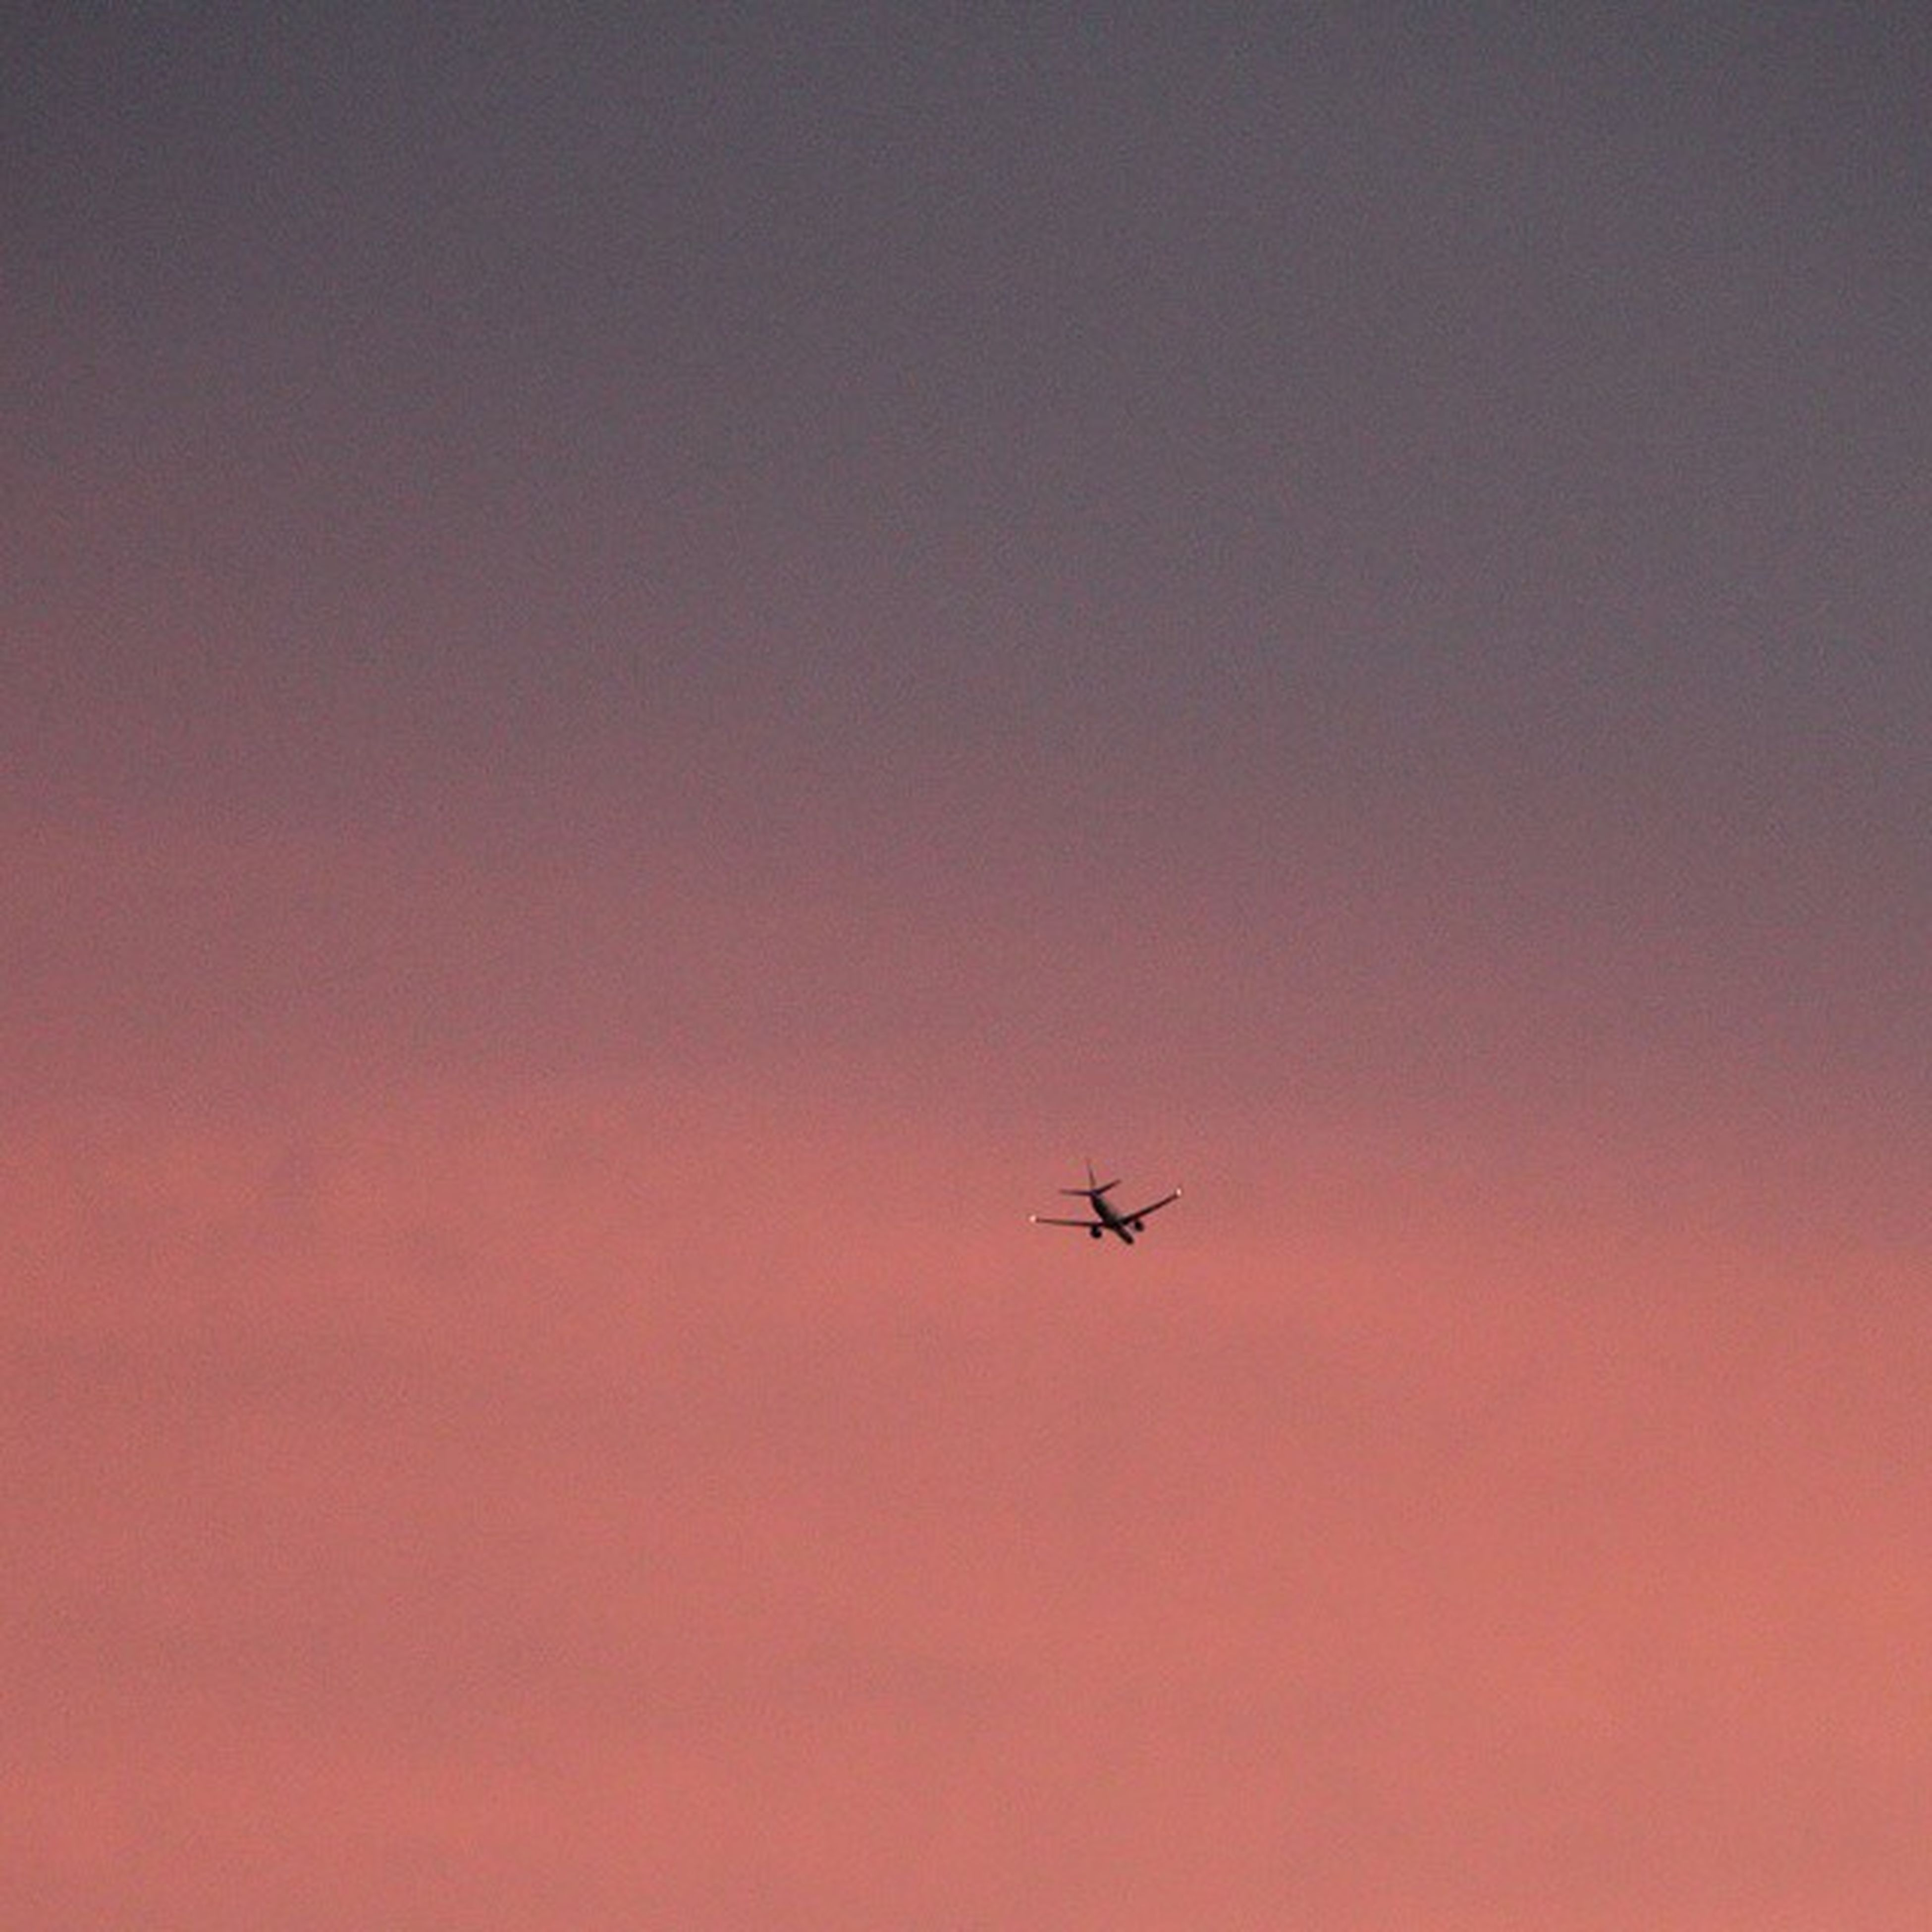 flying, transportation, airplane, air vehicle, mode of transport, mid-air, low angle view, sky, on the move, journey, copy space, travel, silhouette, sunset, public transportation, cloud - sky, nature, commercial airplane, outdoors, helicopter